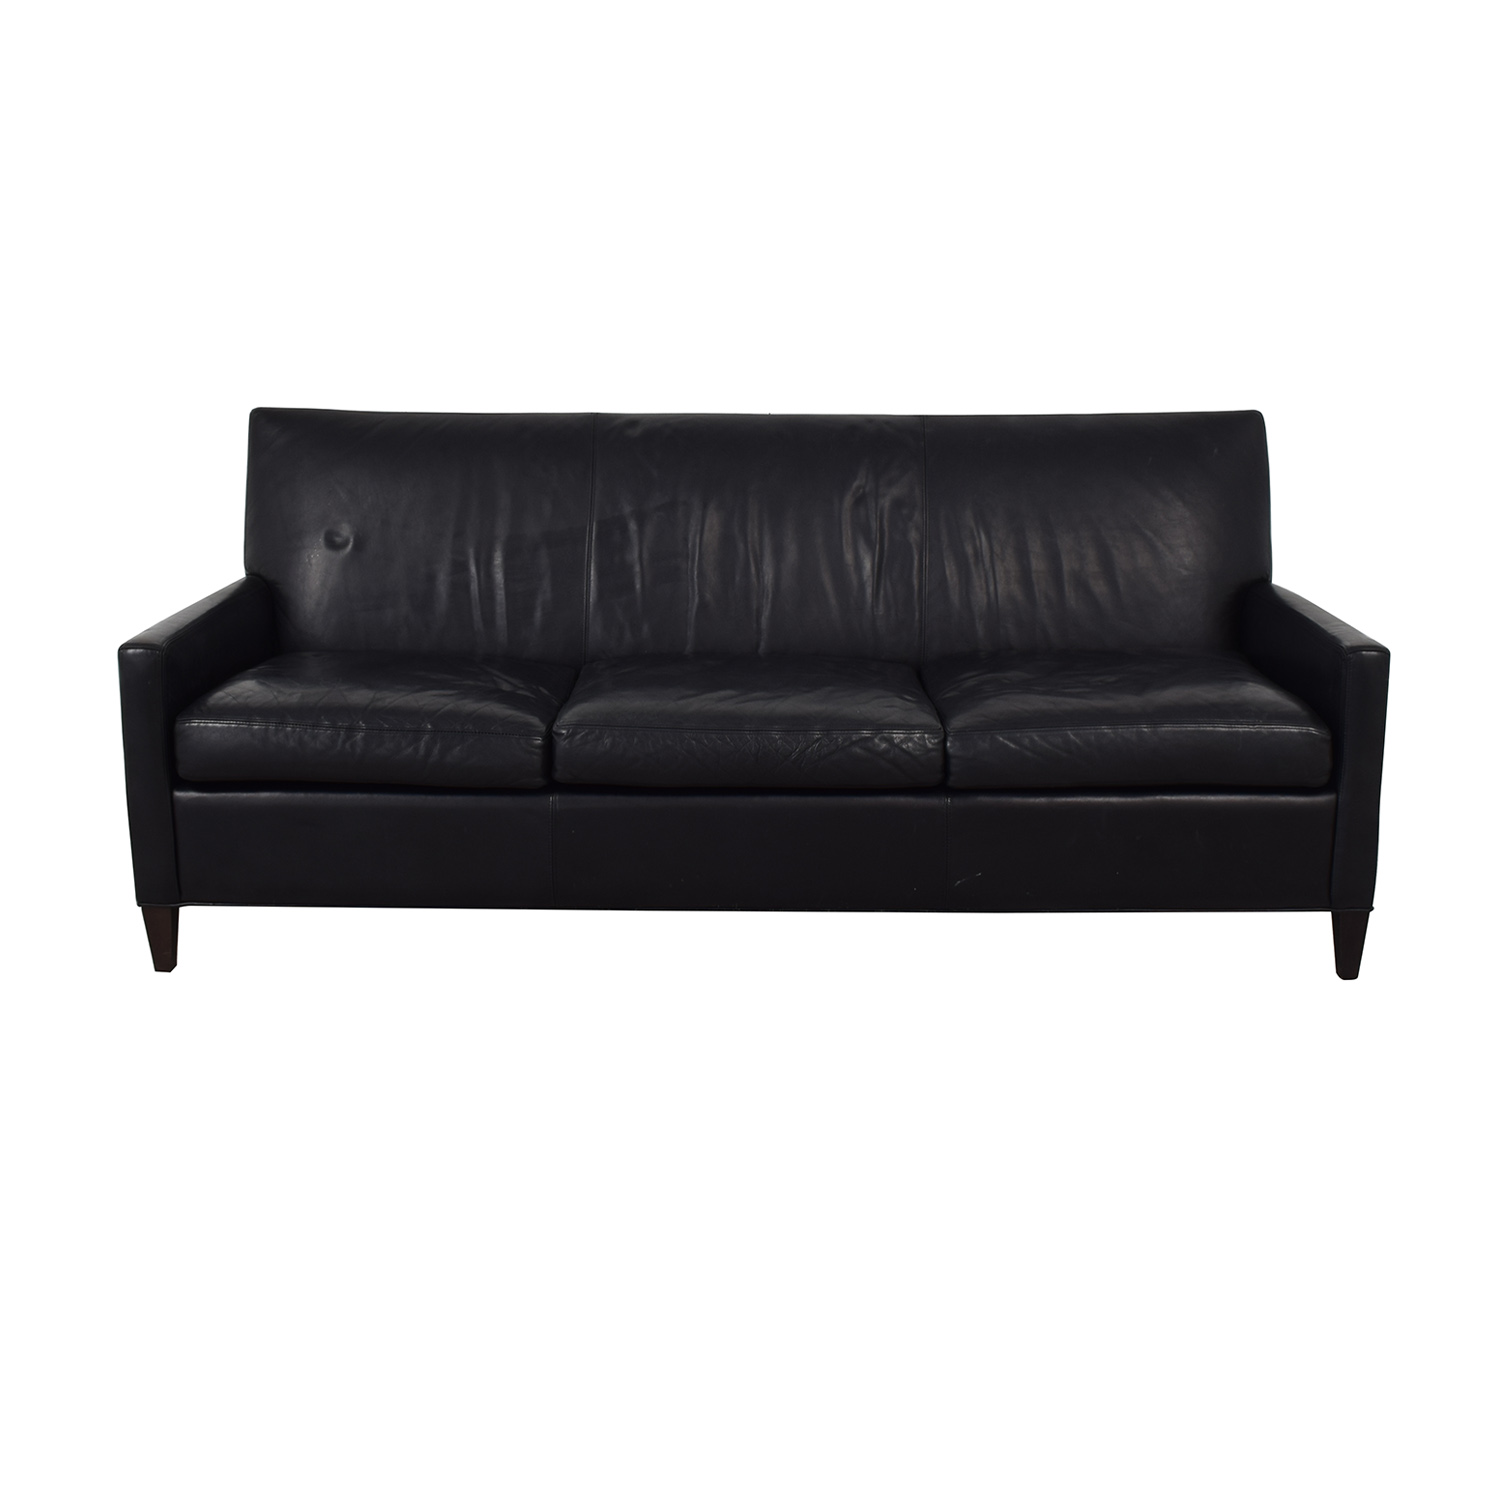 Crate & Barrel Crate & Barrel Black Leather Sofa nyc